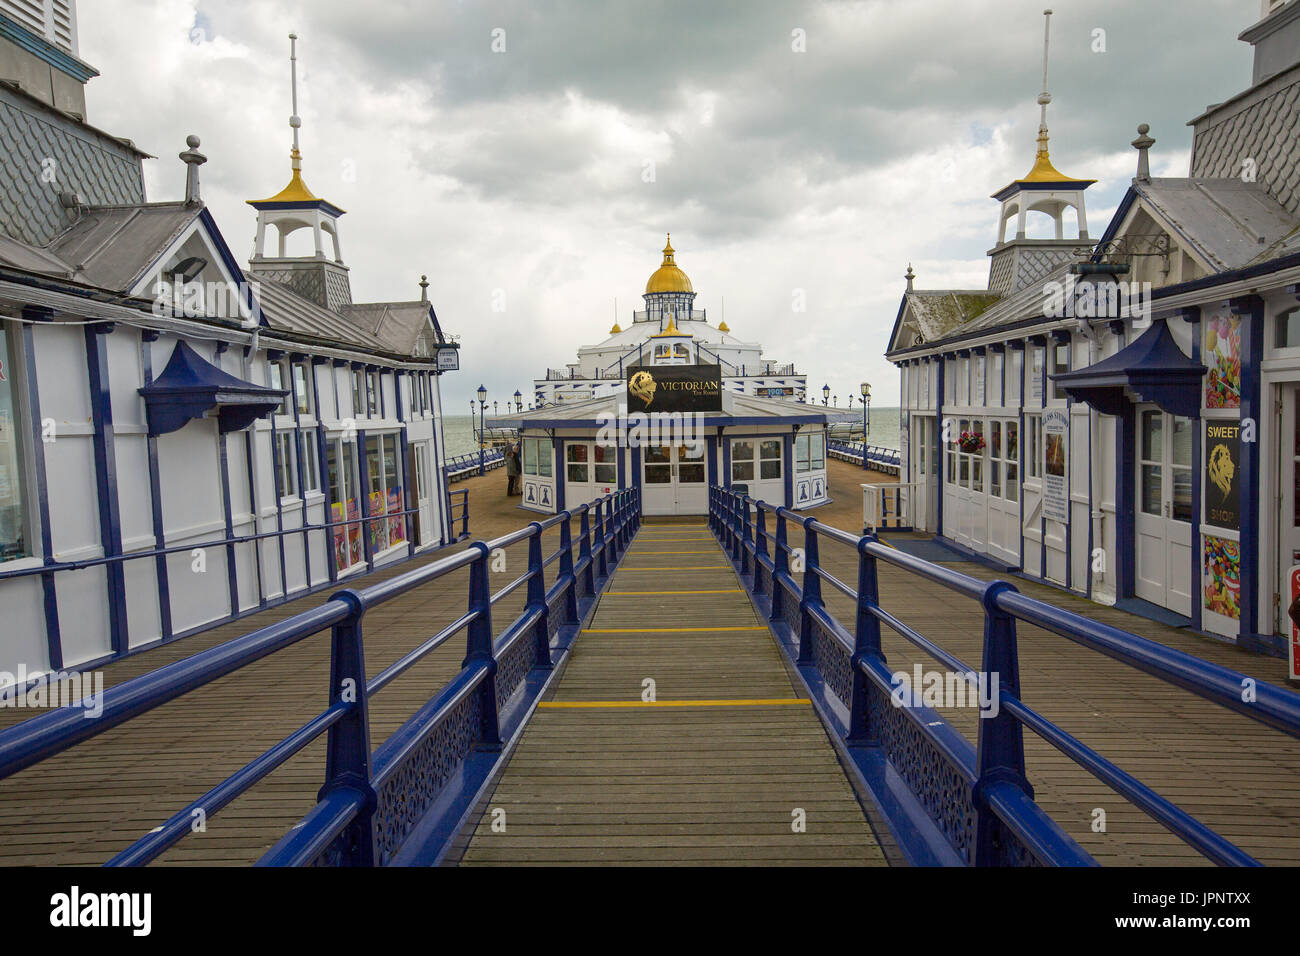 Historic Victorian pier at Eastbourne, England - Stock Image